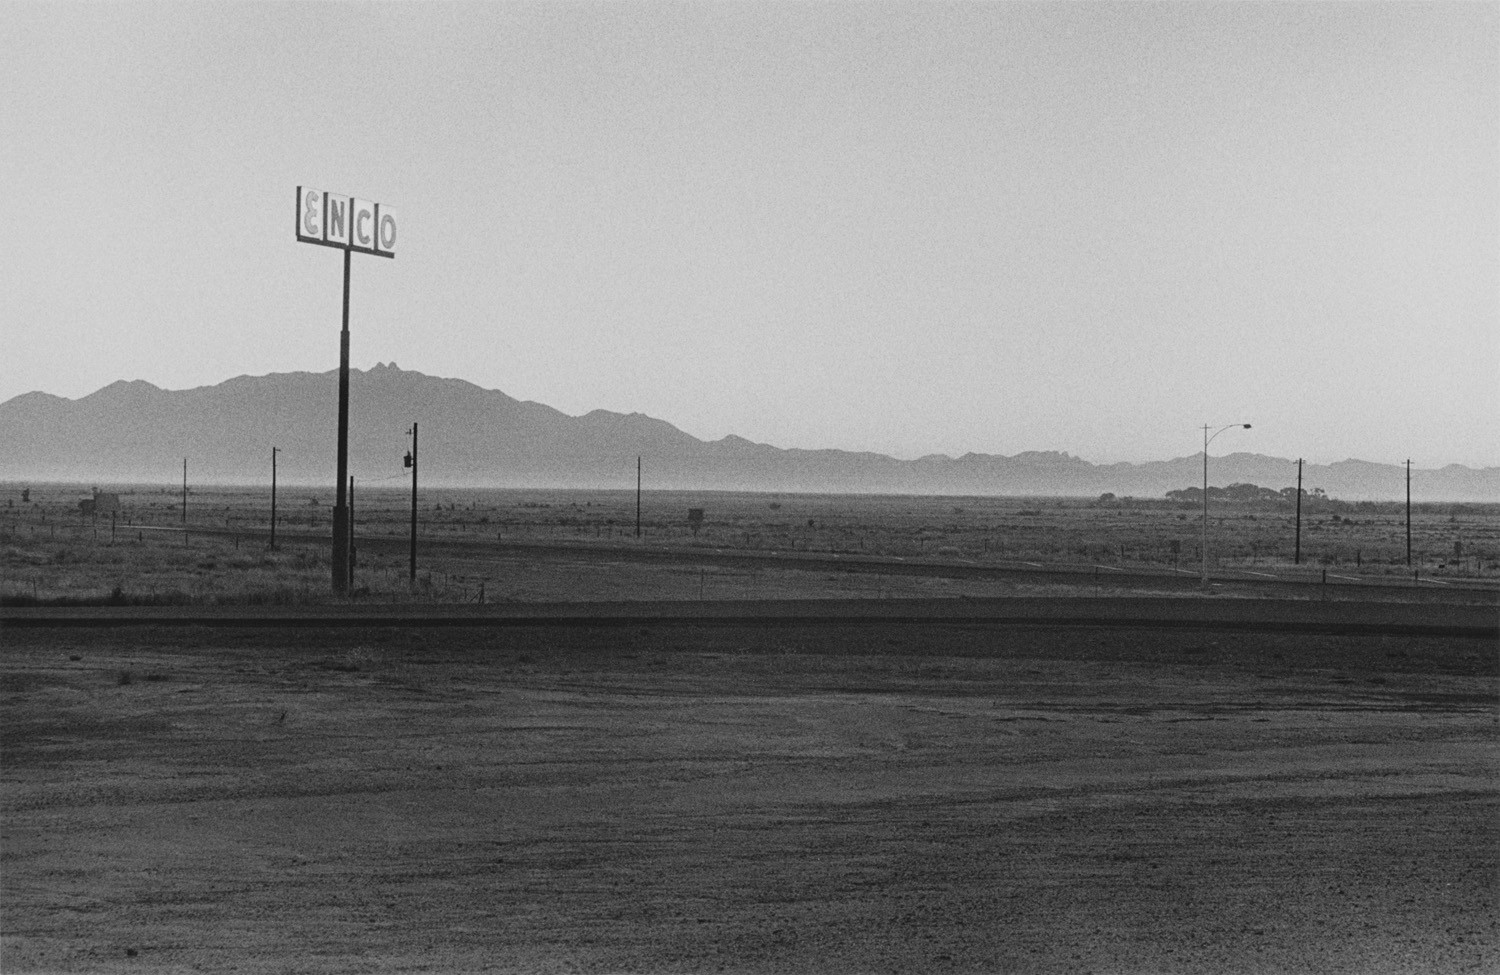 Henry Wessel, Southwest, 1968